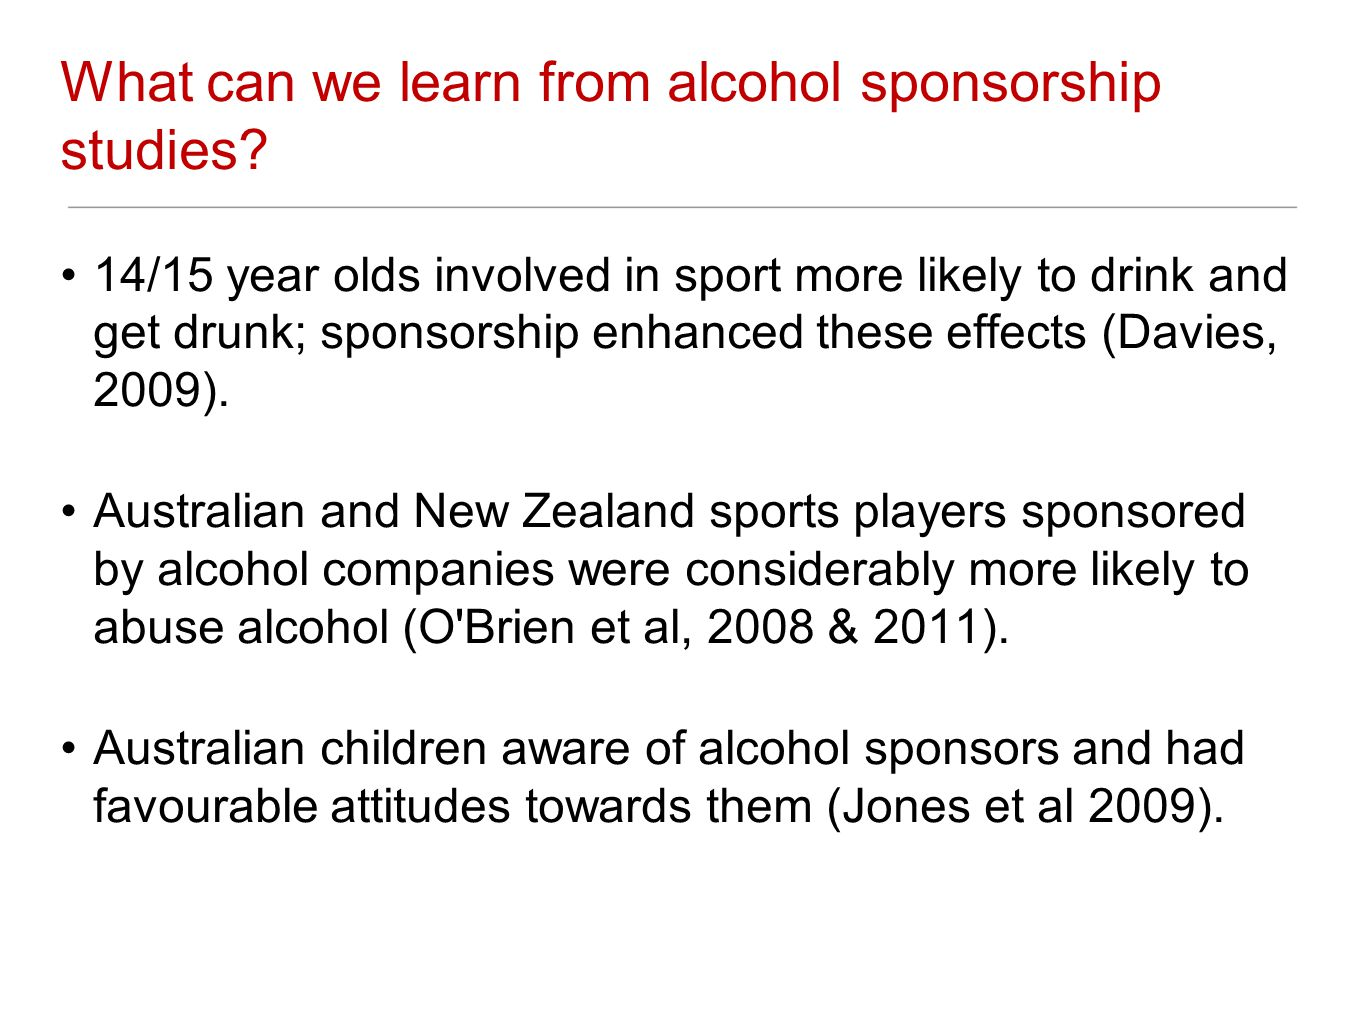 What can we learn from alcohol sponsorship studies? 14/15 year olds involved in sport more likely to drink and get drunk; sponsorship enhanced these e